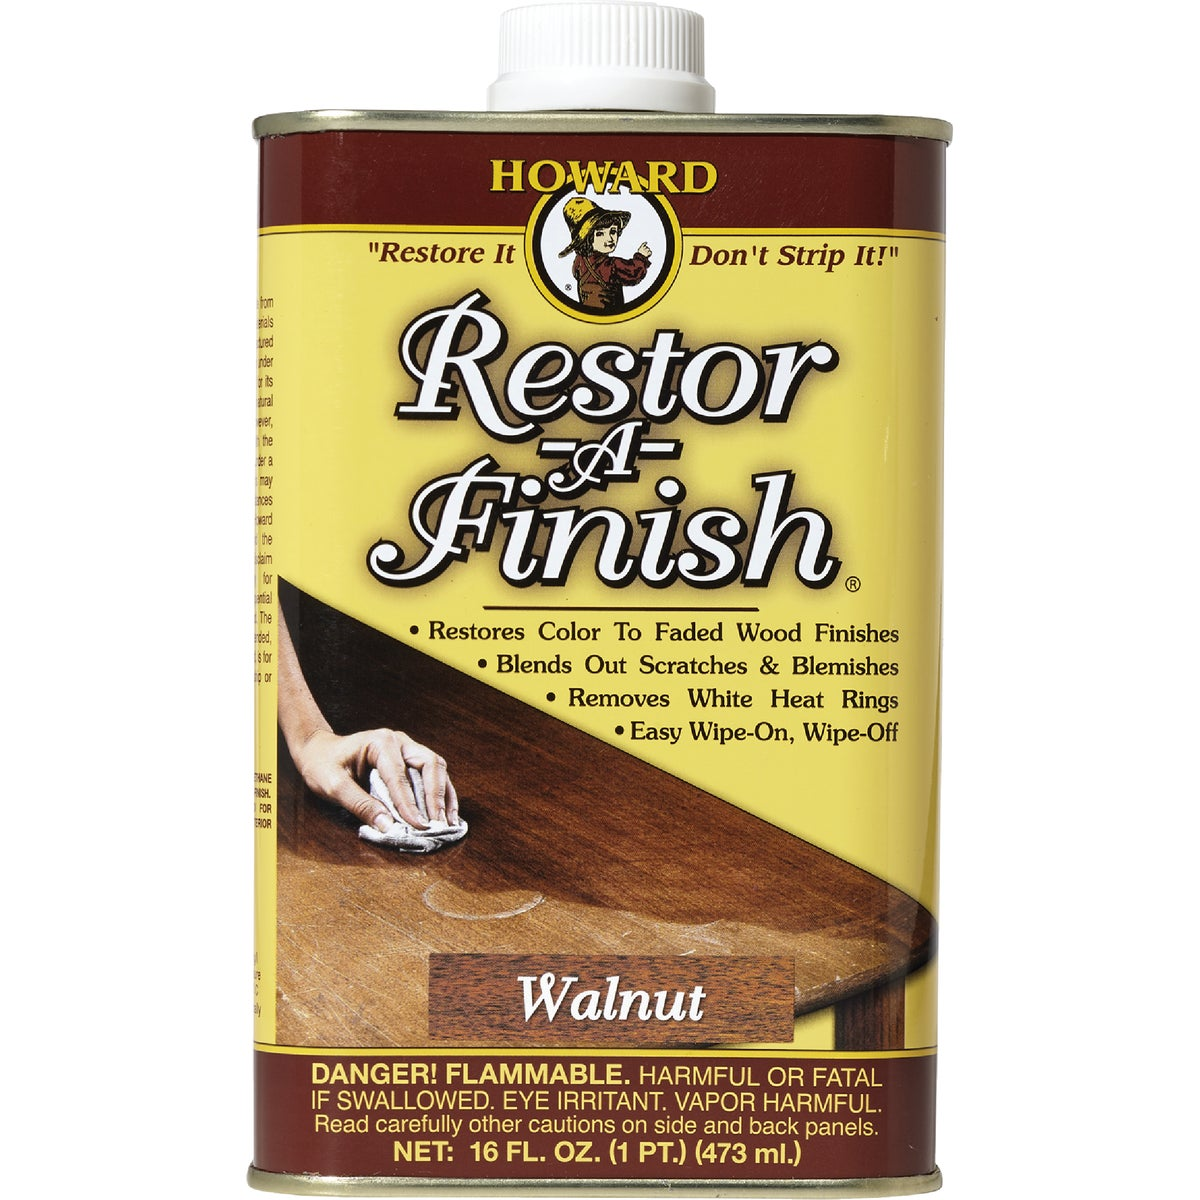 WALNUT RESTOR-A-FINISH